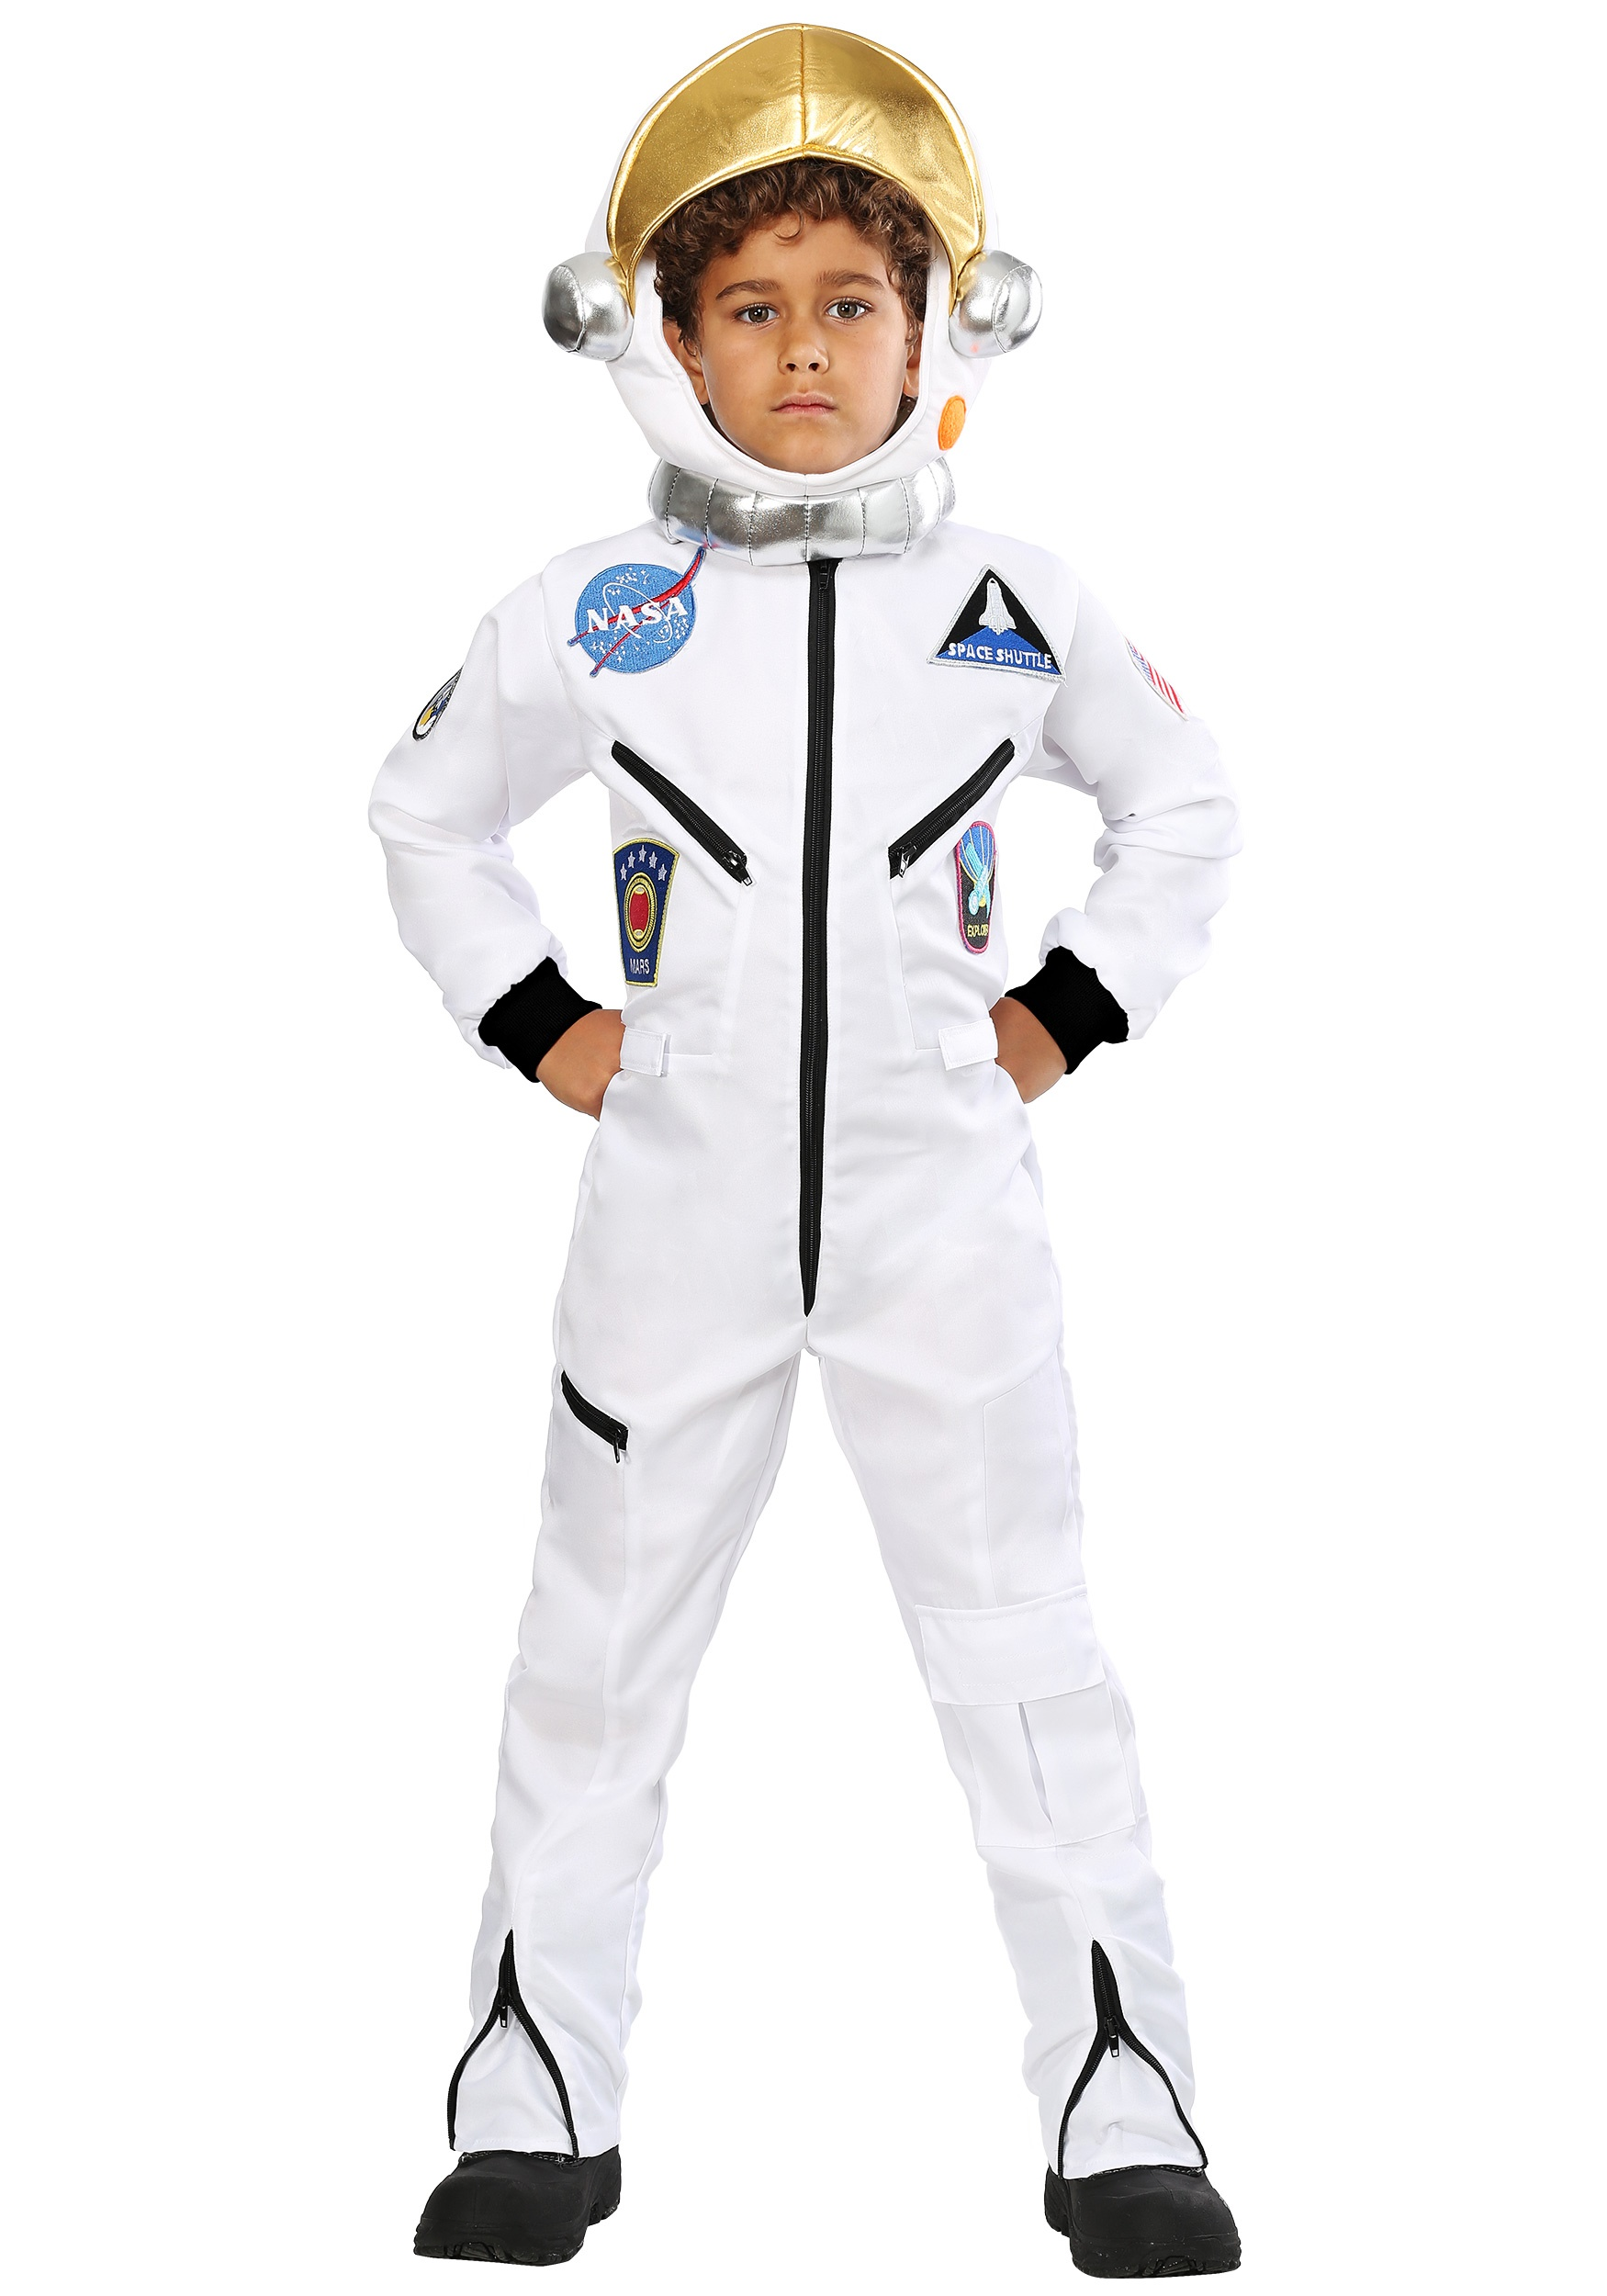 c263336771dd Kid s White Astronaut Jumpsuit Costume